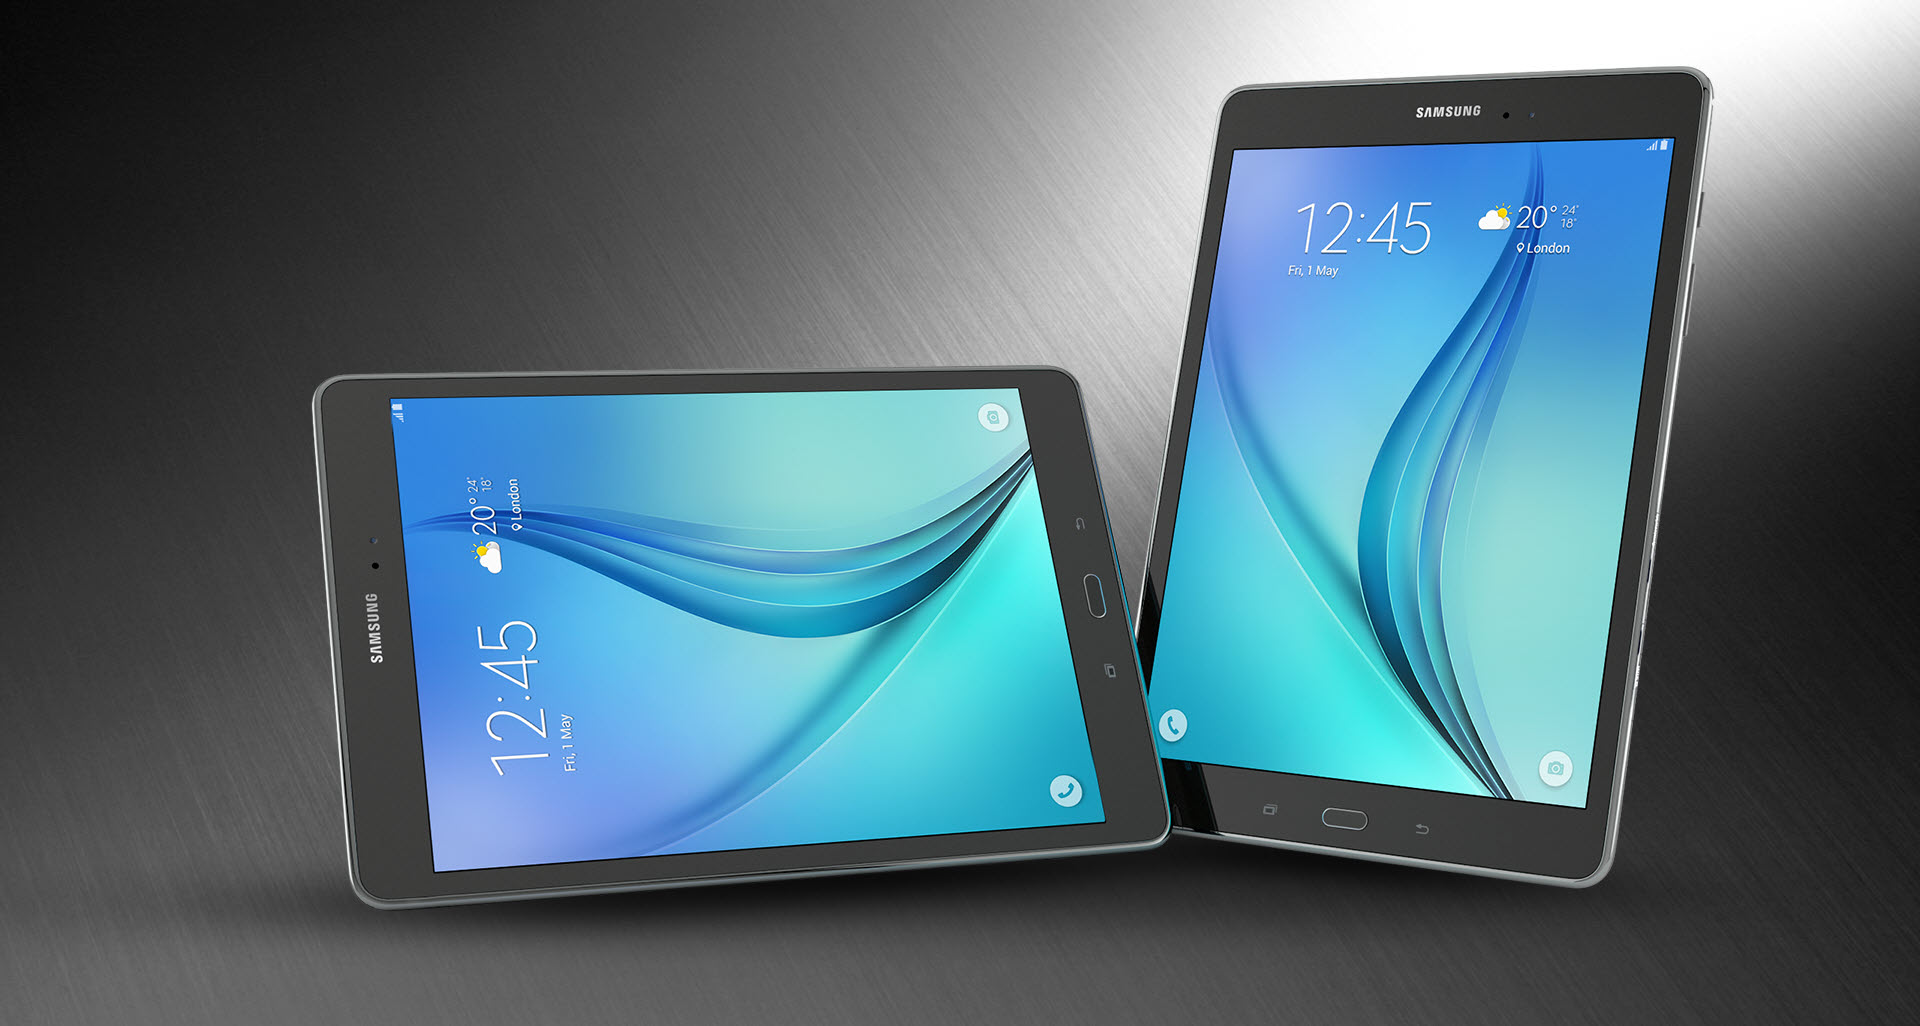 Galaxy Tab 9.7 Galaxy Tab A 9 7 Gets Updated To Android 7 1 1 Nougat Android